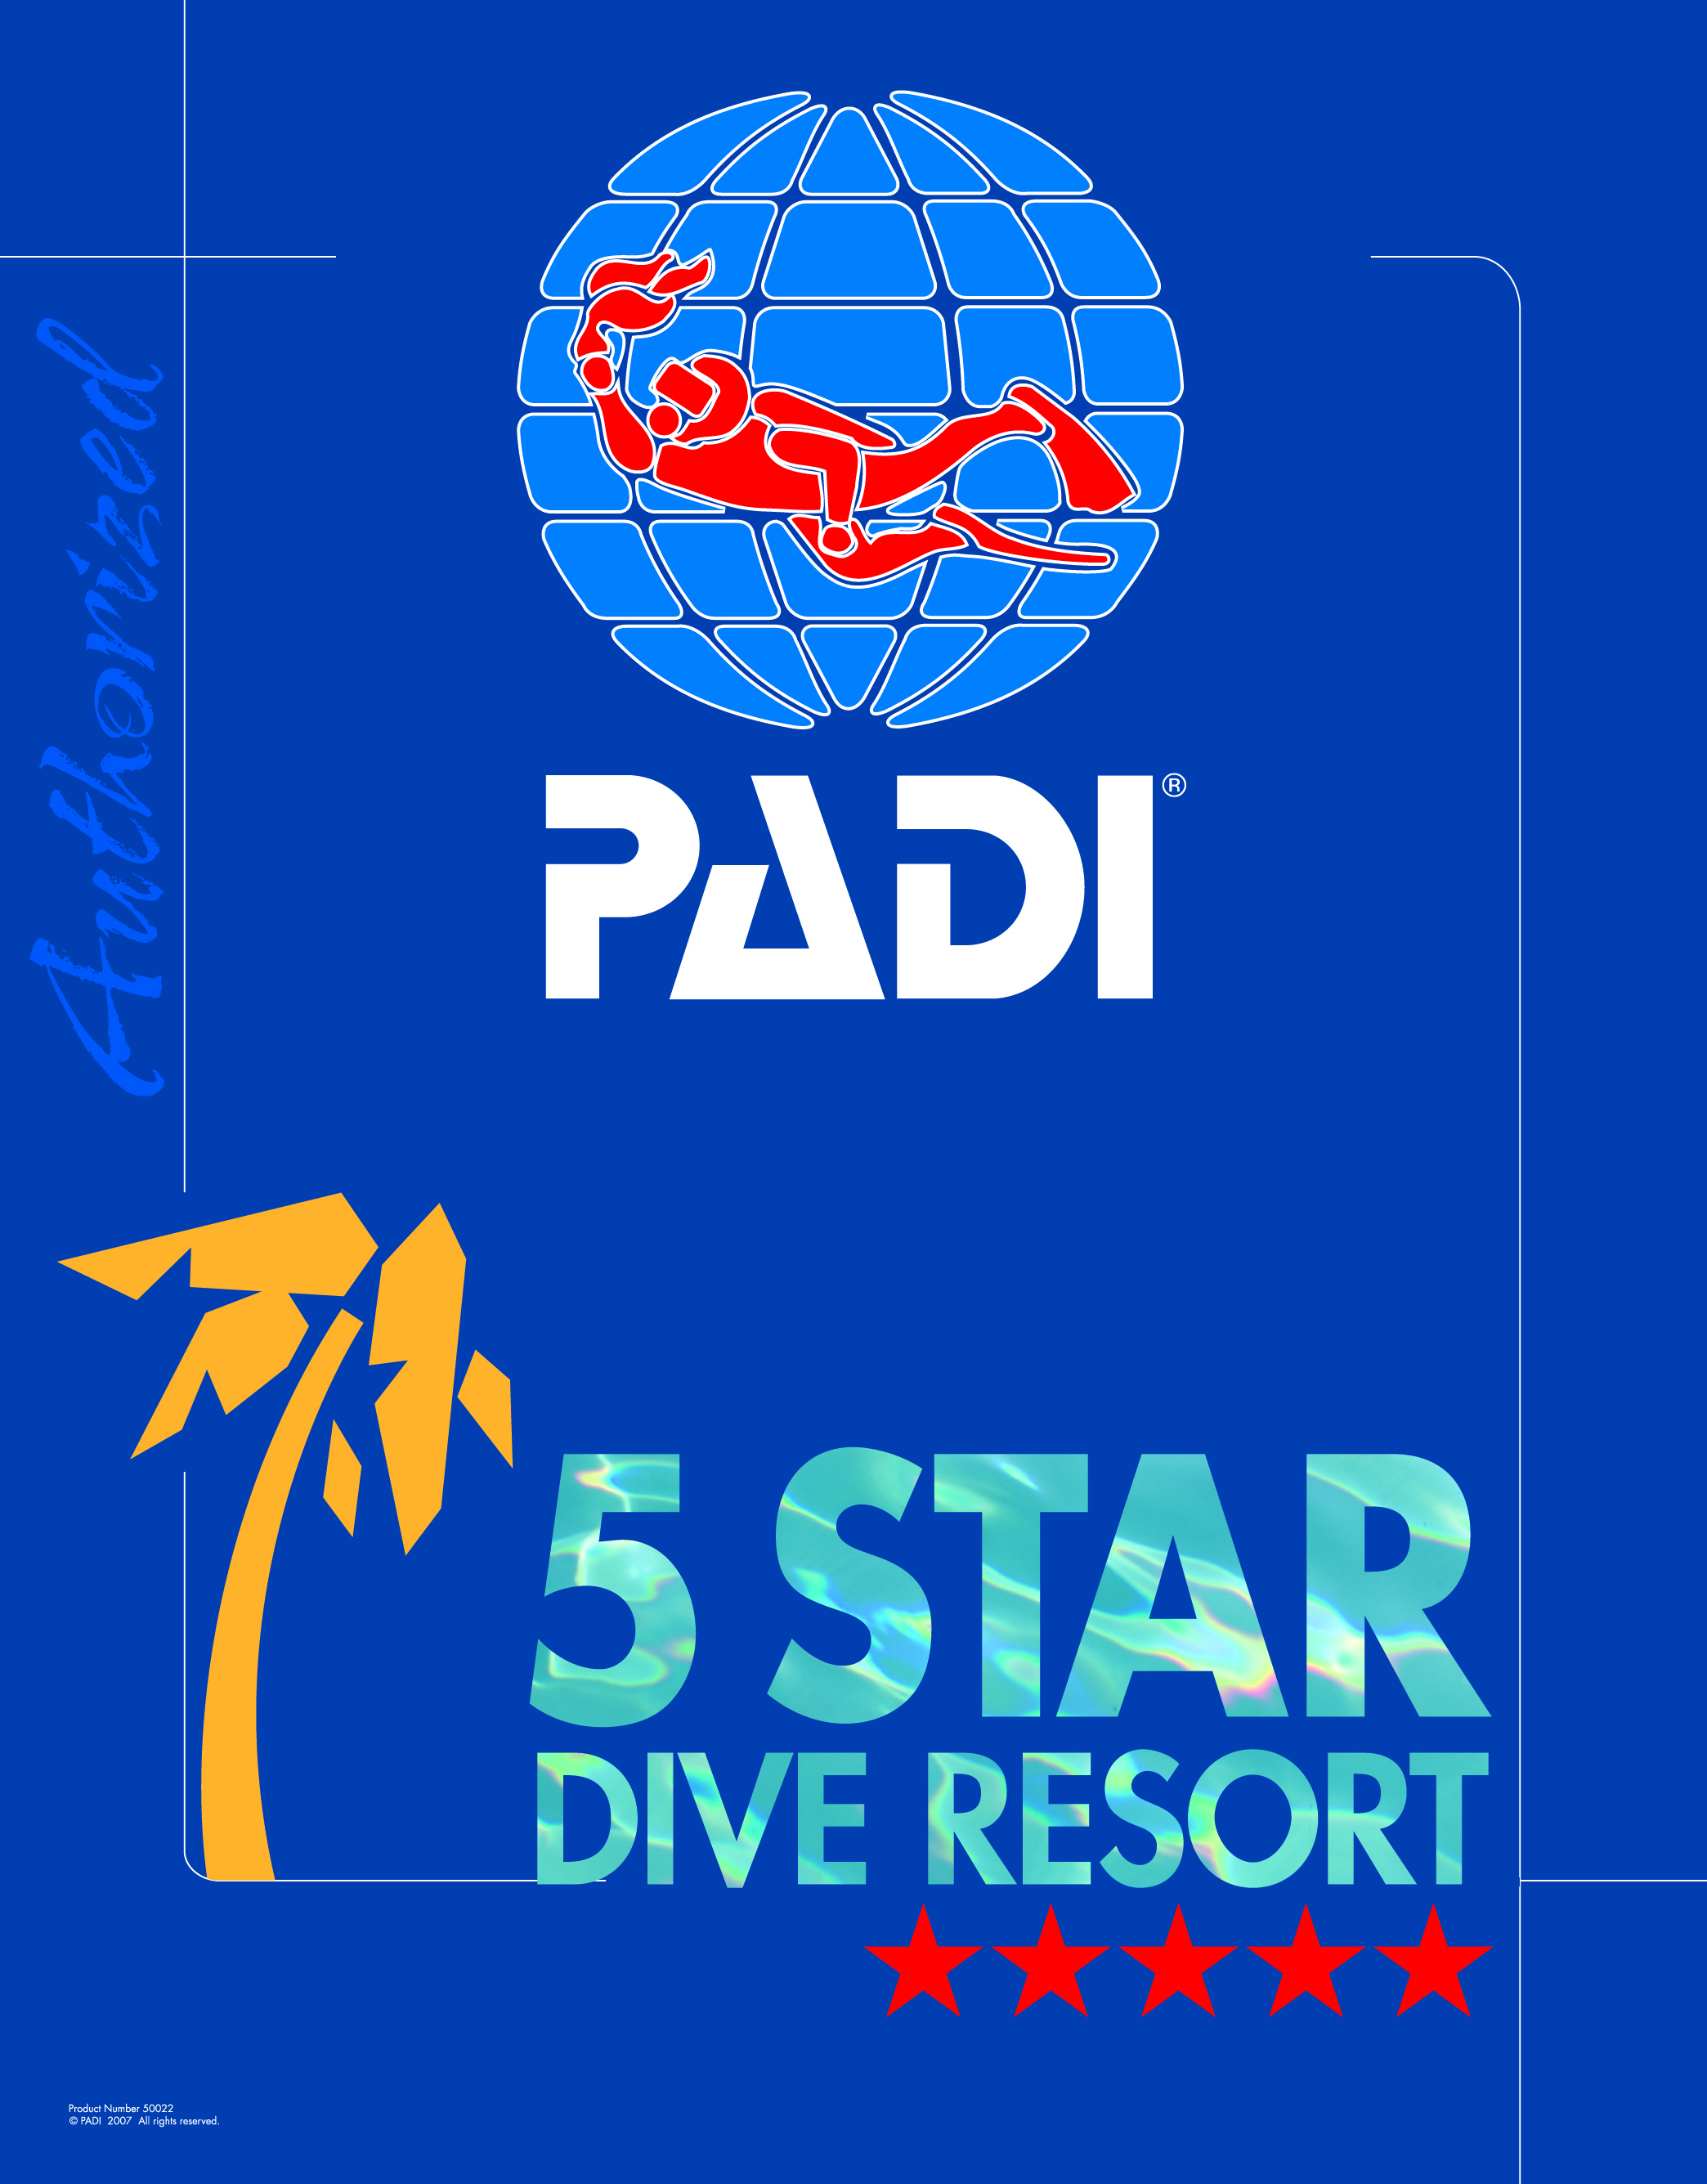 Strýtan Divecenter is now a PADI 5* Dive Resort!